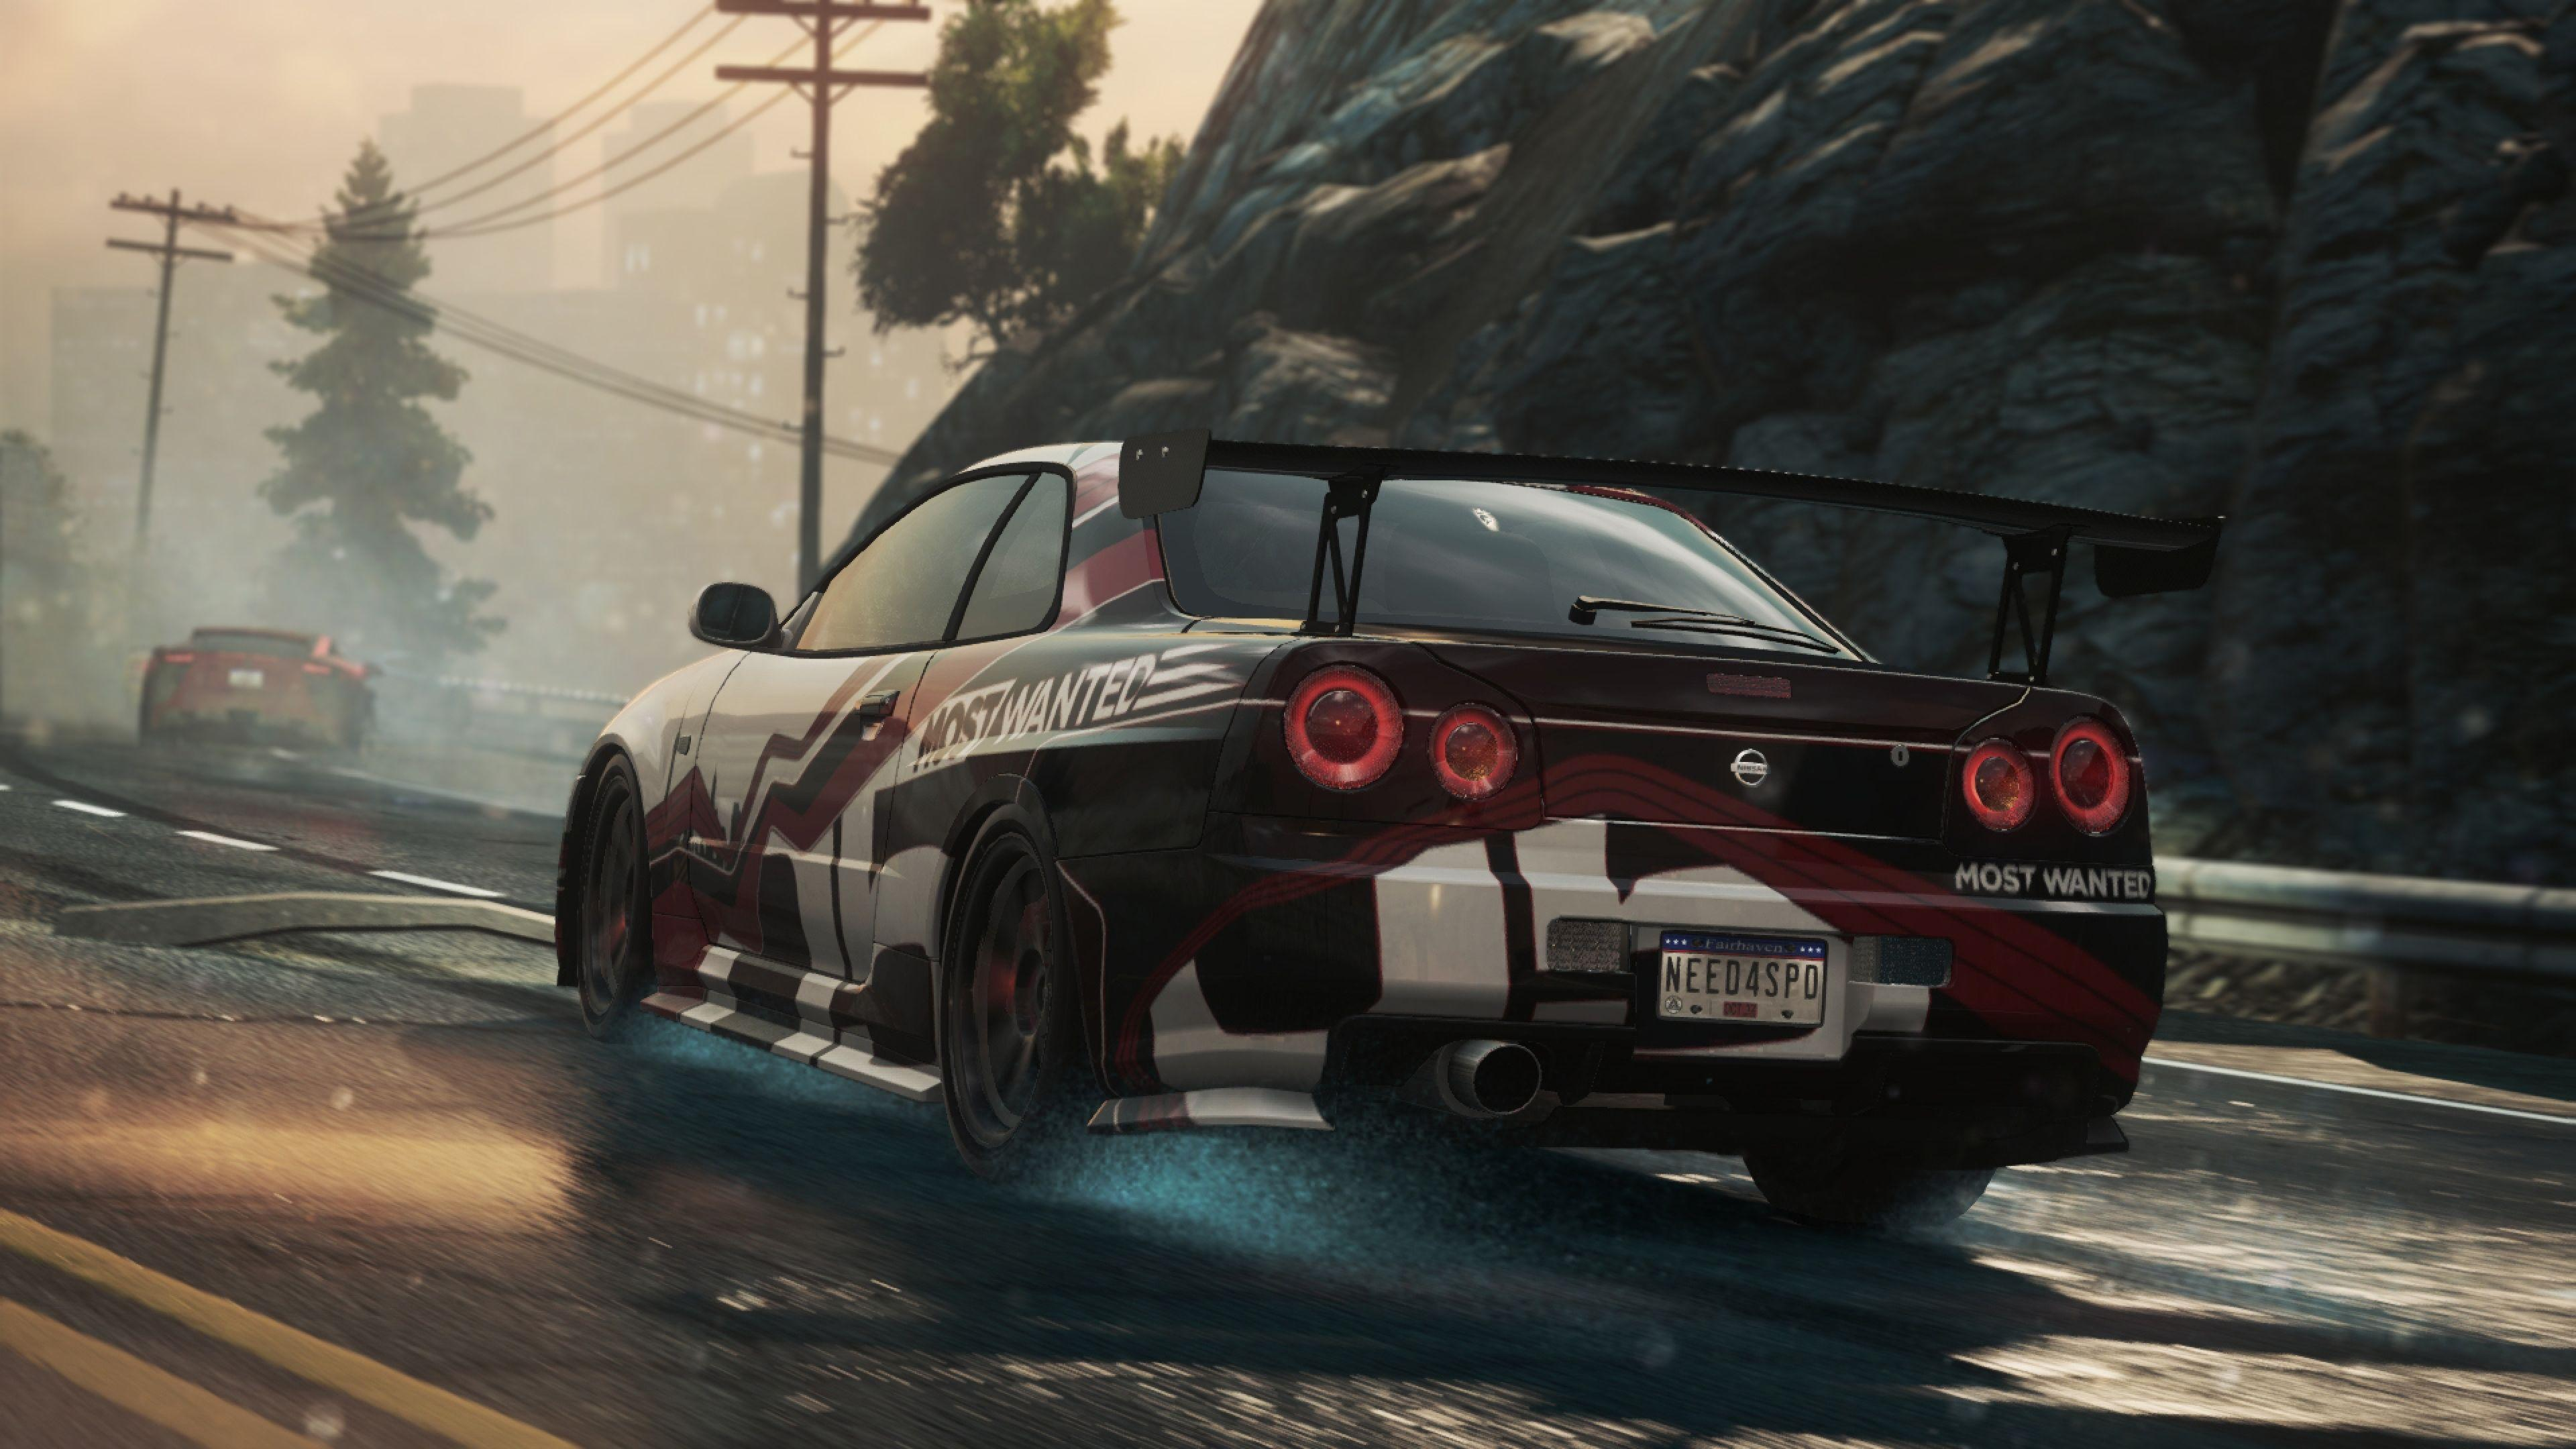 Download Wallpaper 3840x2160 Need for speed, Nissan skyline gt-r ...